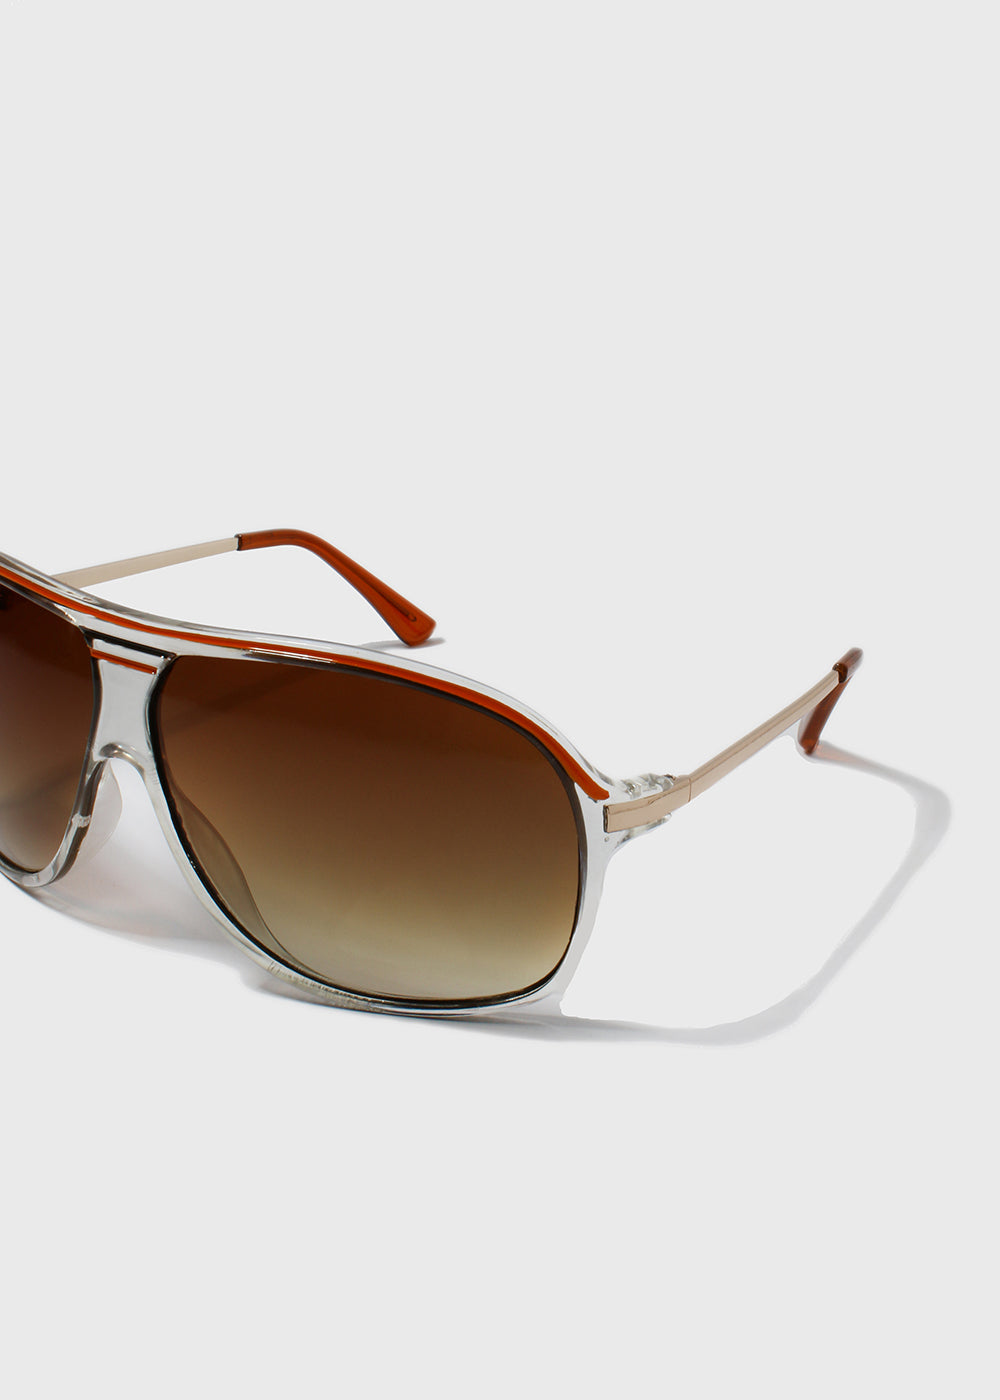 Clear Frame Aviator Sunglasses- Orange